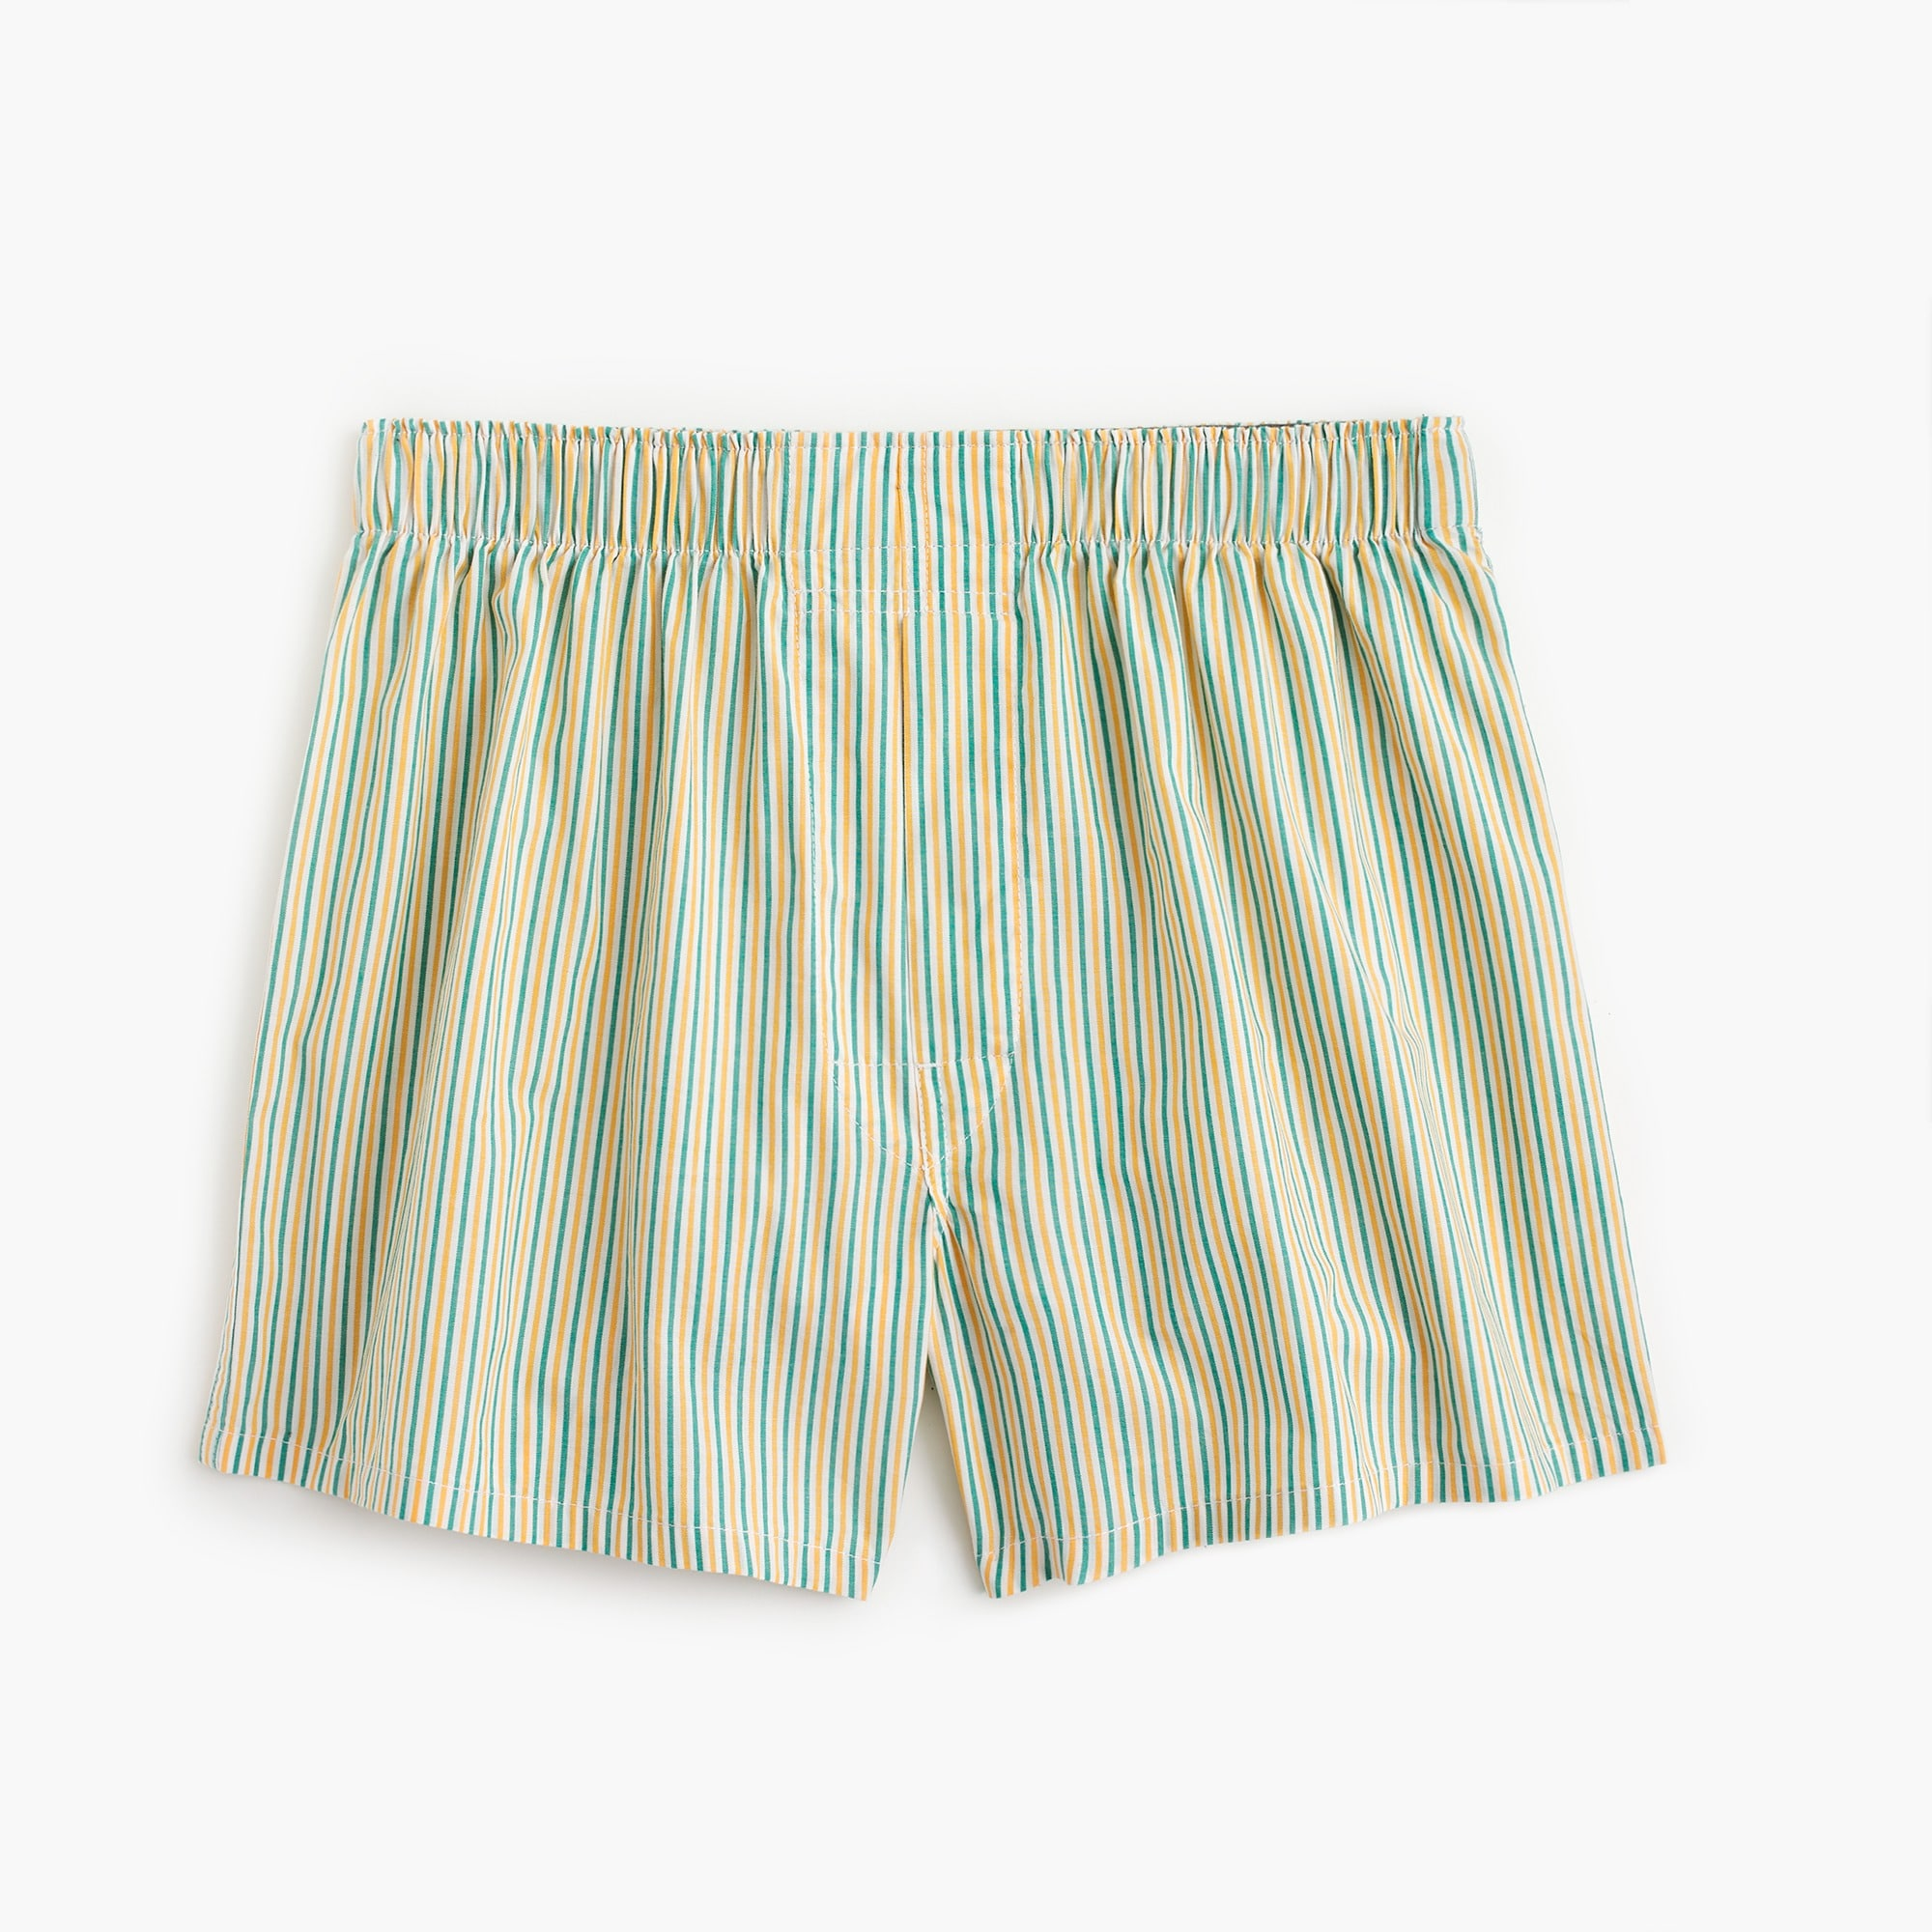 Yellow and teal striped boxers men underwear & pajamas c